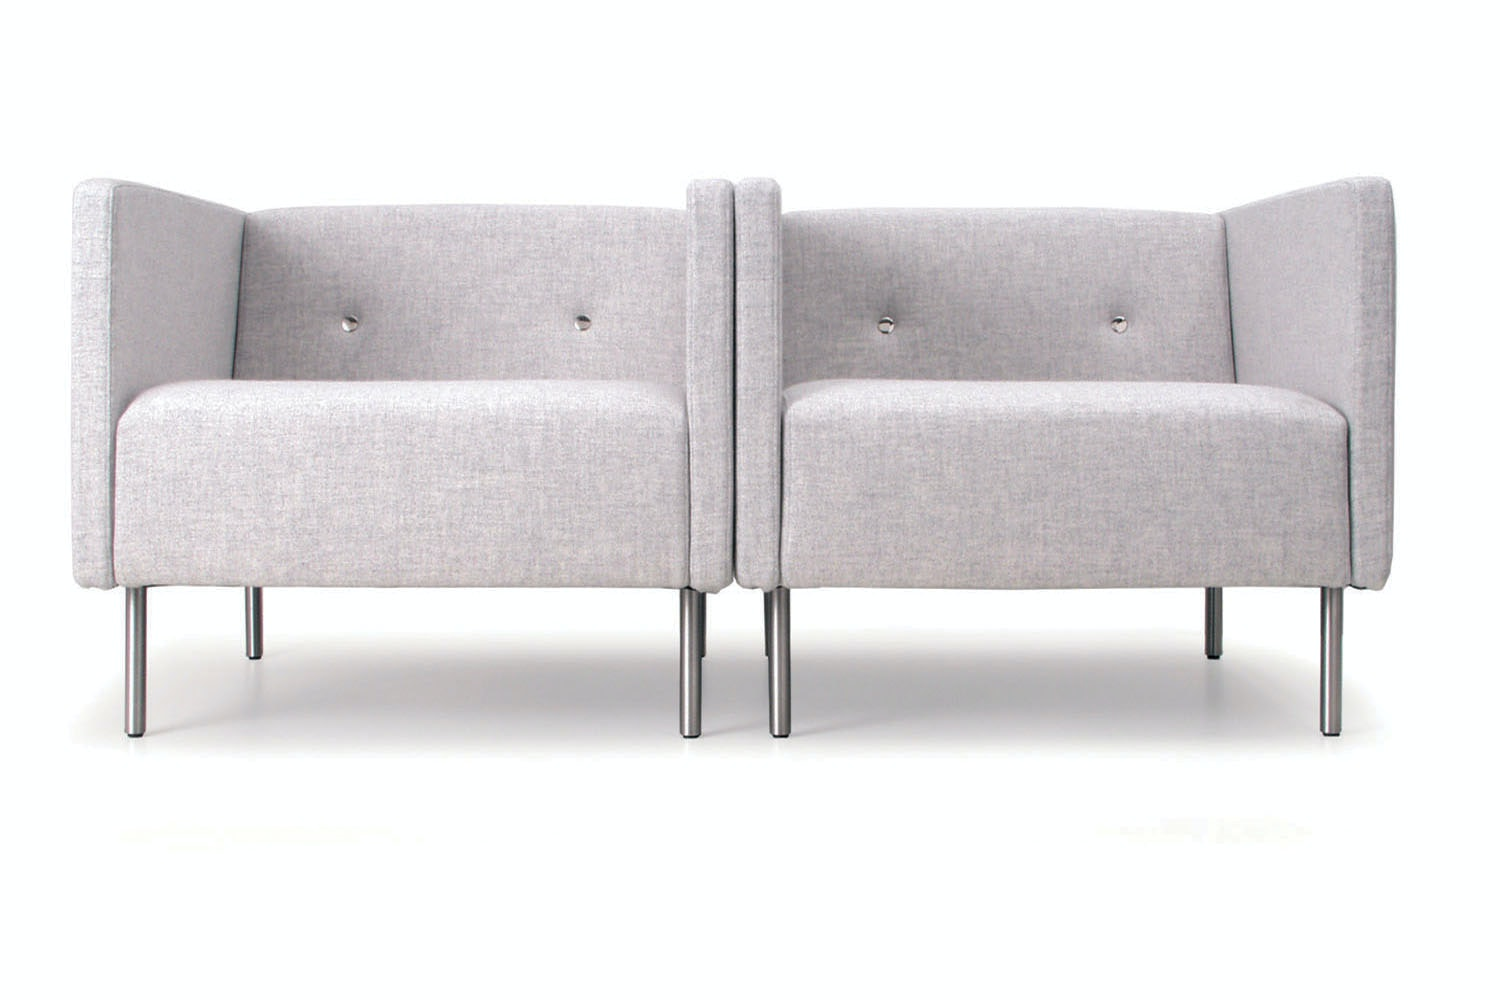 Bottoni Slim Sofa by Marcel Wanders for Moooi